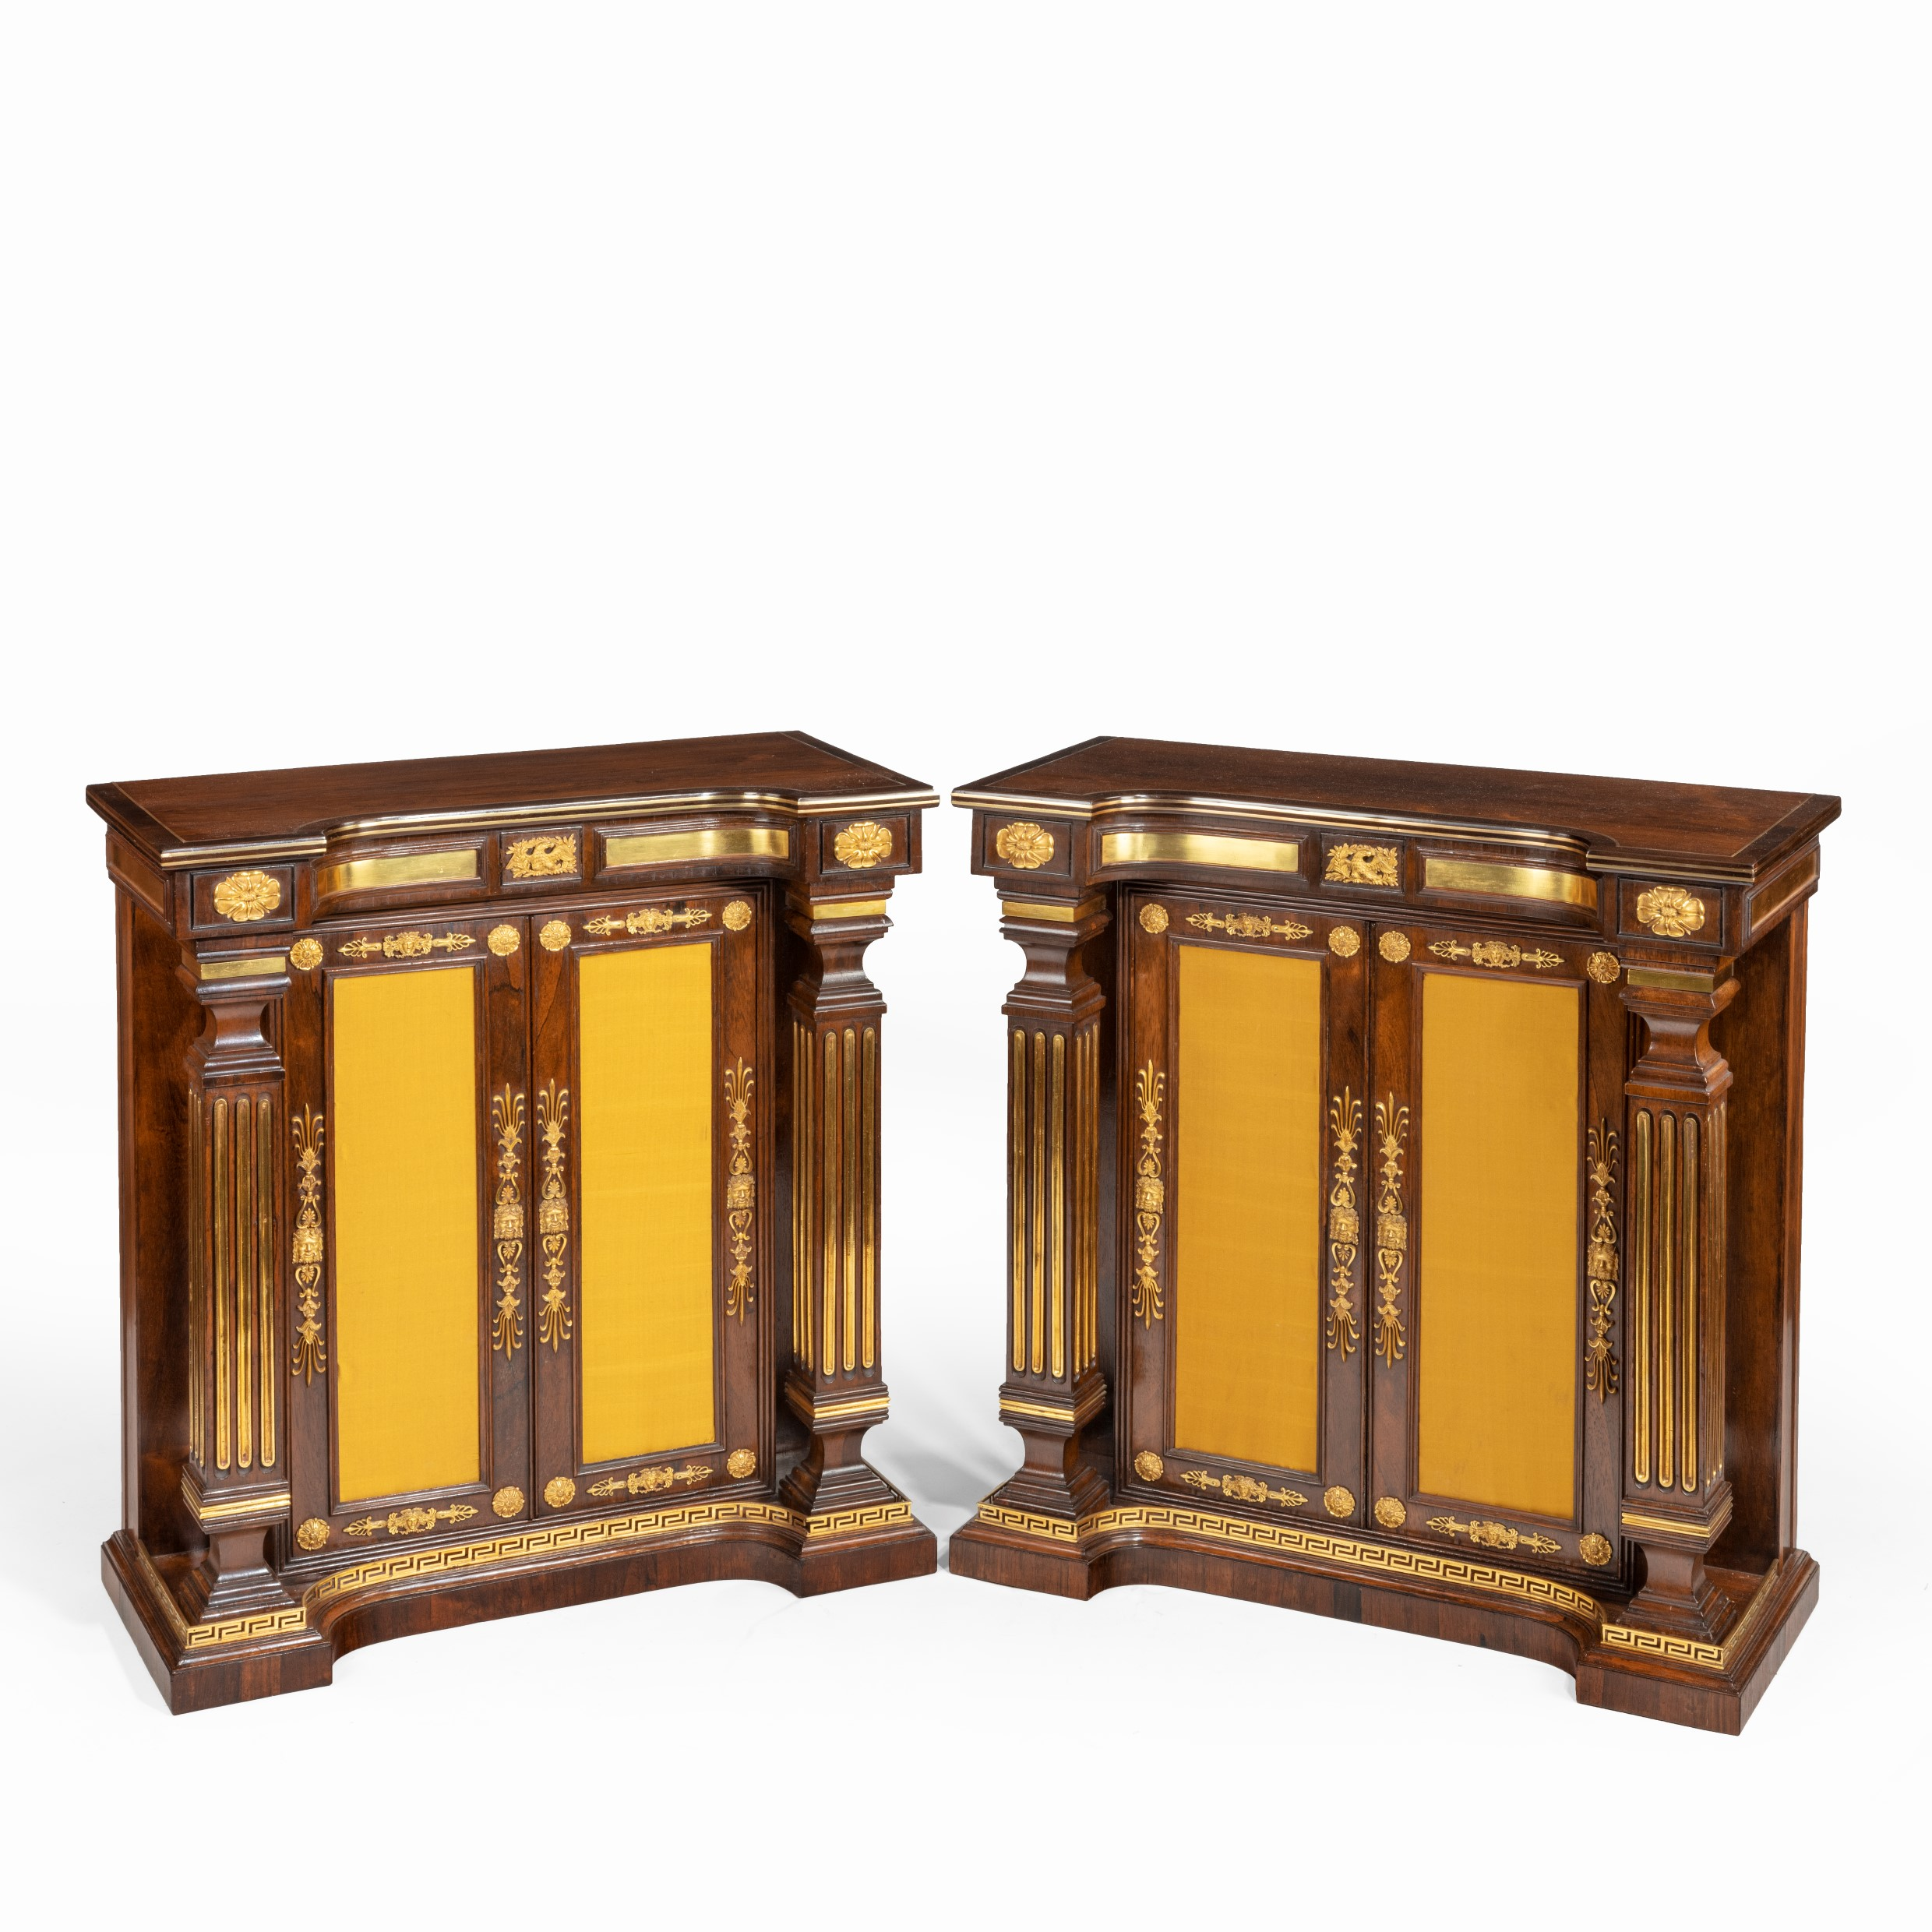 A pair of Regency brass-inlaid rosewood side cabinets